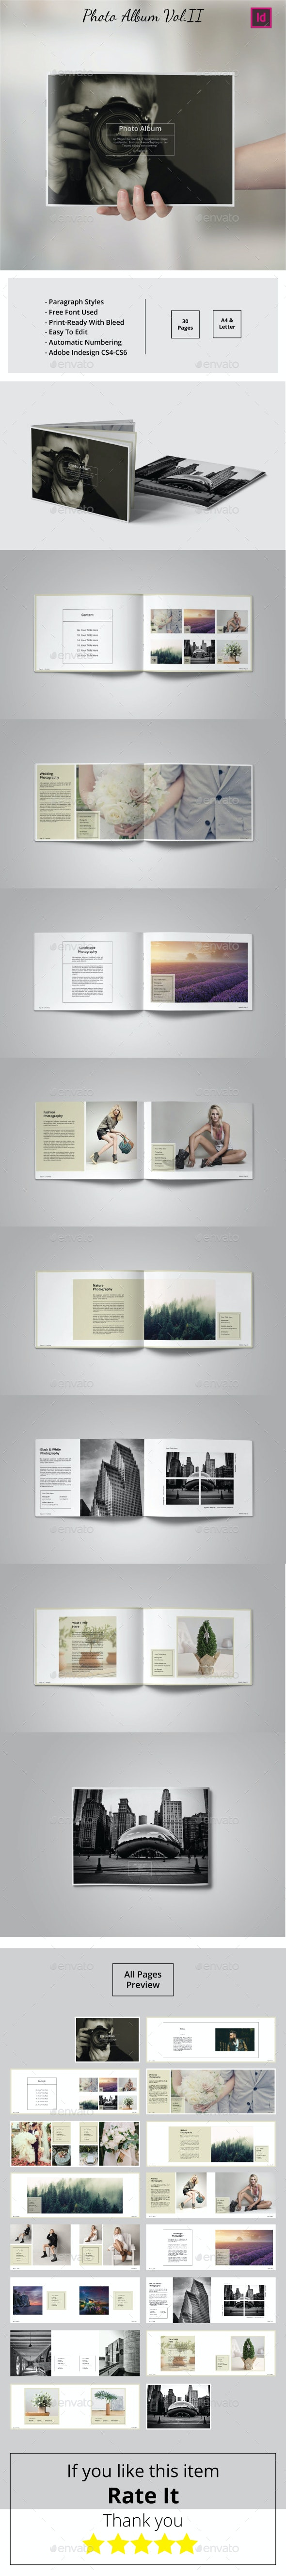 Multipurpose Landscape Photo Album Vol.II - Photo Albums Print Templates